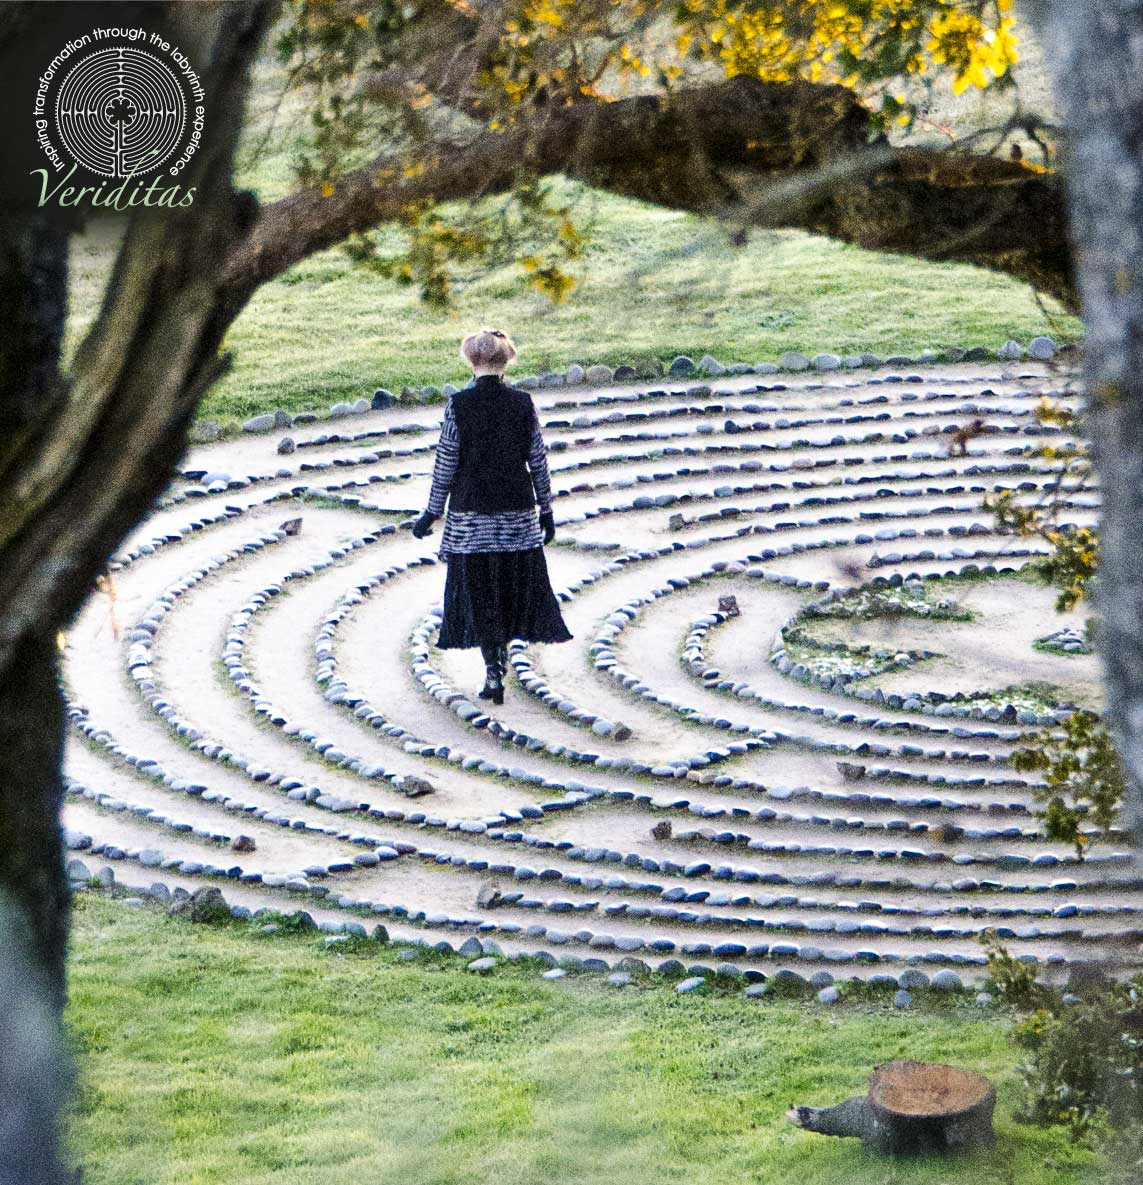 Walking the Labyrinth, photo by Lars Howlett of discover labyrinths.com